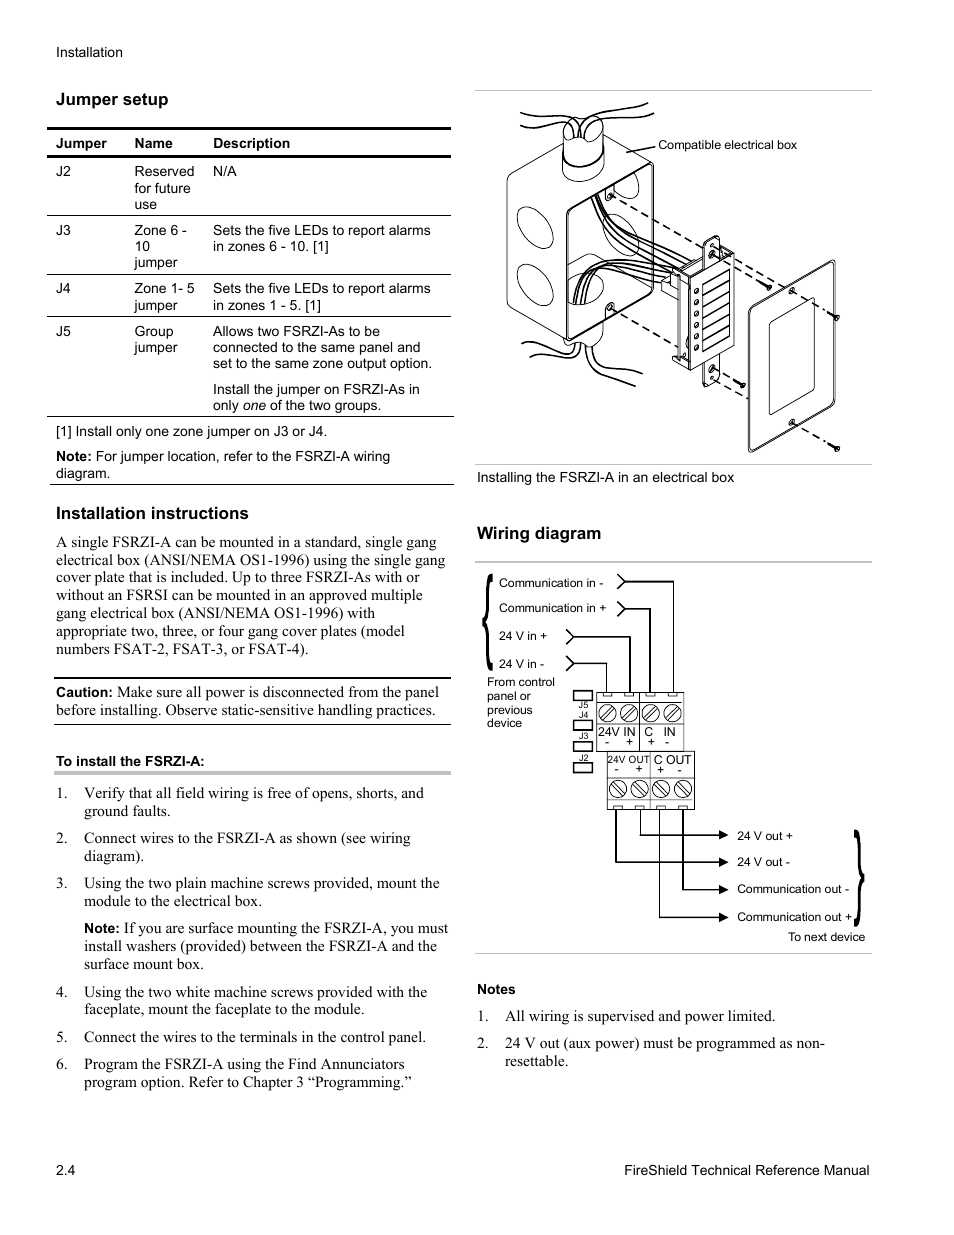 Jumper Setup  Installation Instructions  Wiring Diagram